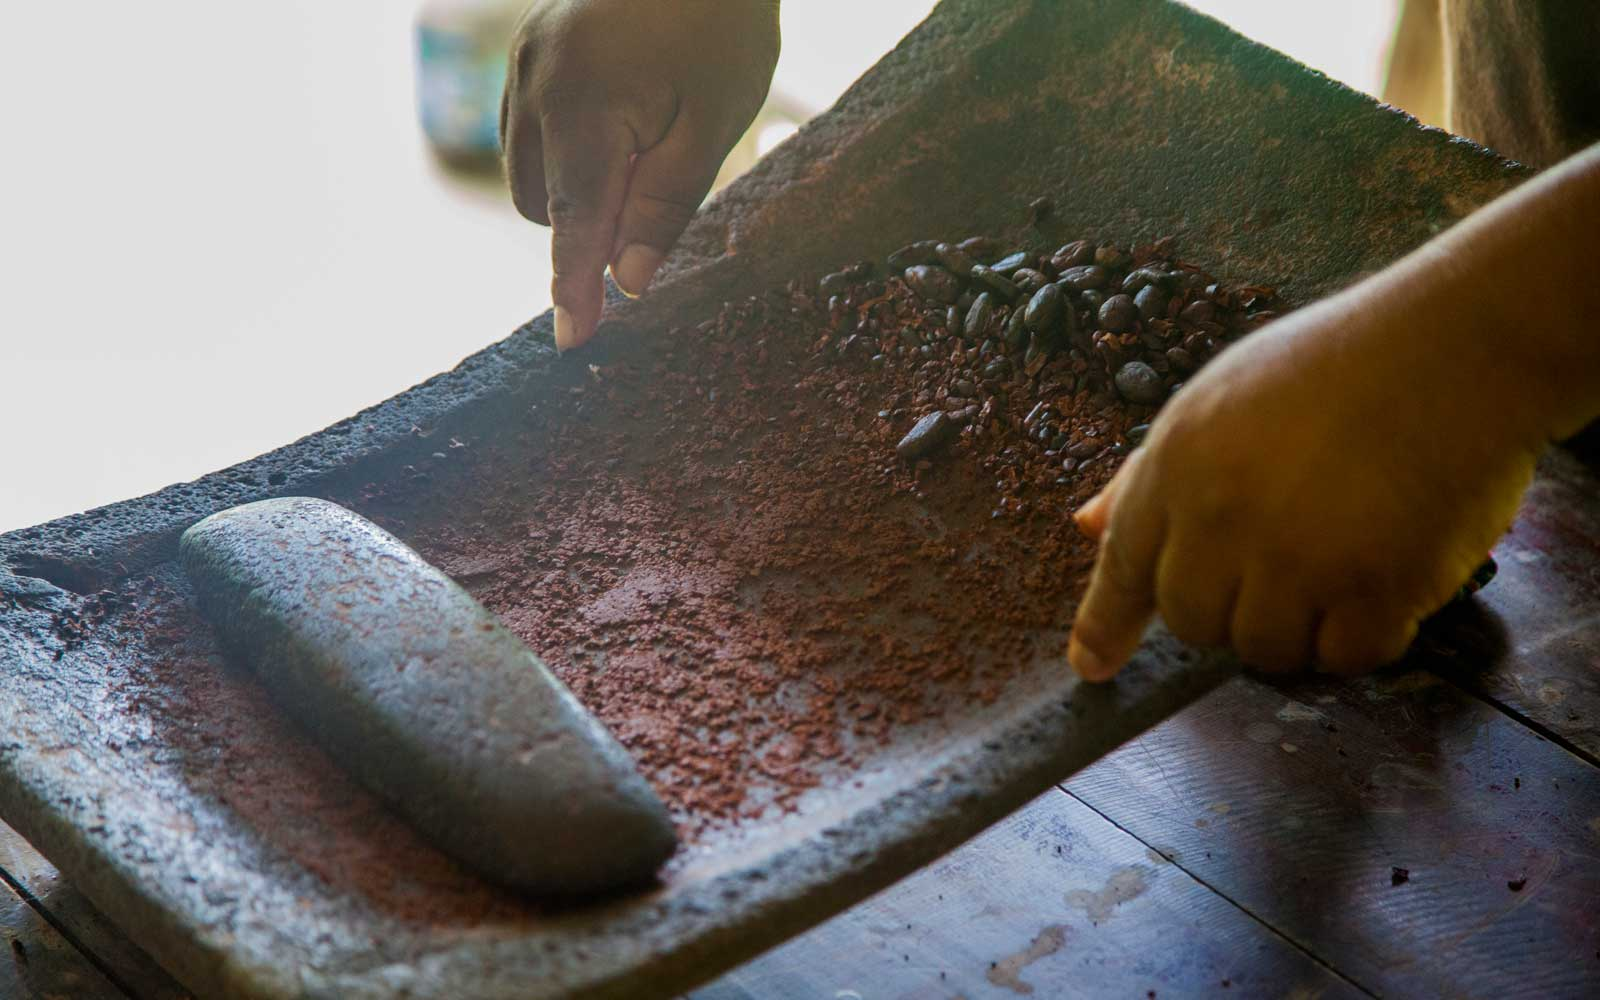 Chocolate Making - Make chocolate from scratch... the Mayan way! Learn this ancient tradition and sample ingredients every step of the way. And of course, you can take home your chocolate as a tasty souvenir. This is a half day or shorter tour.